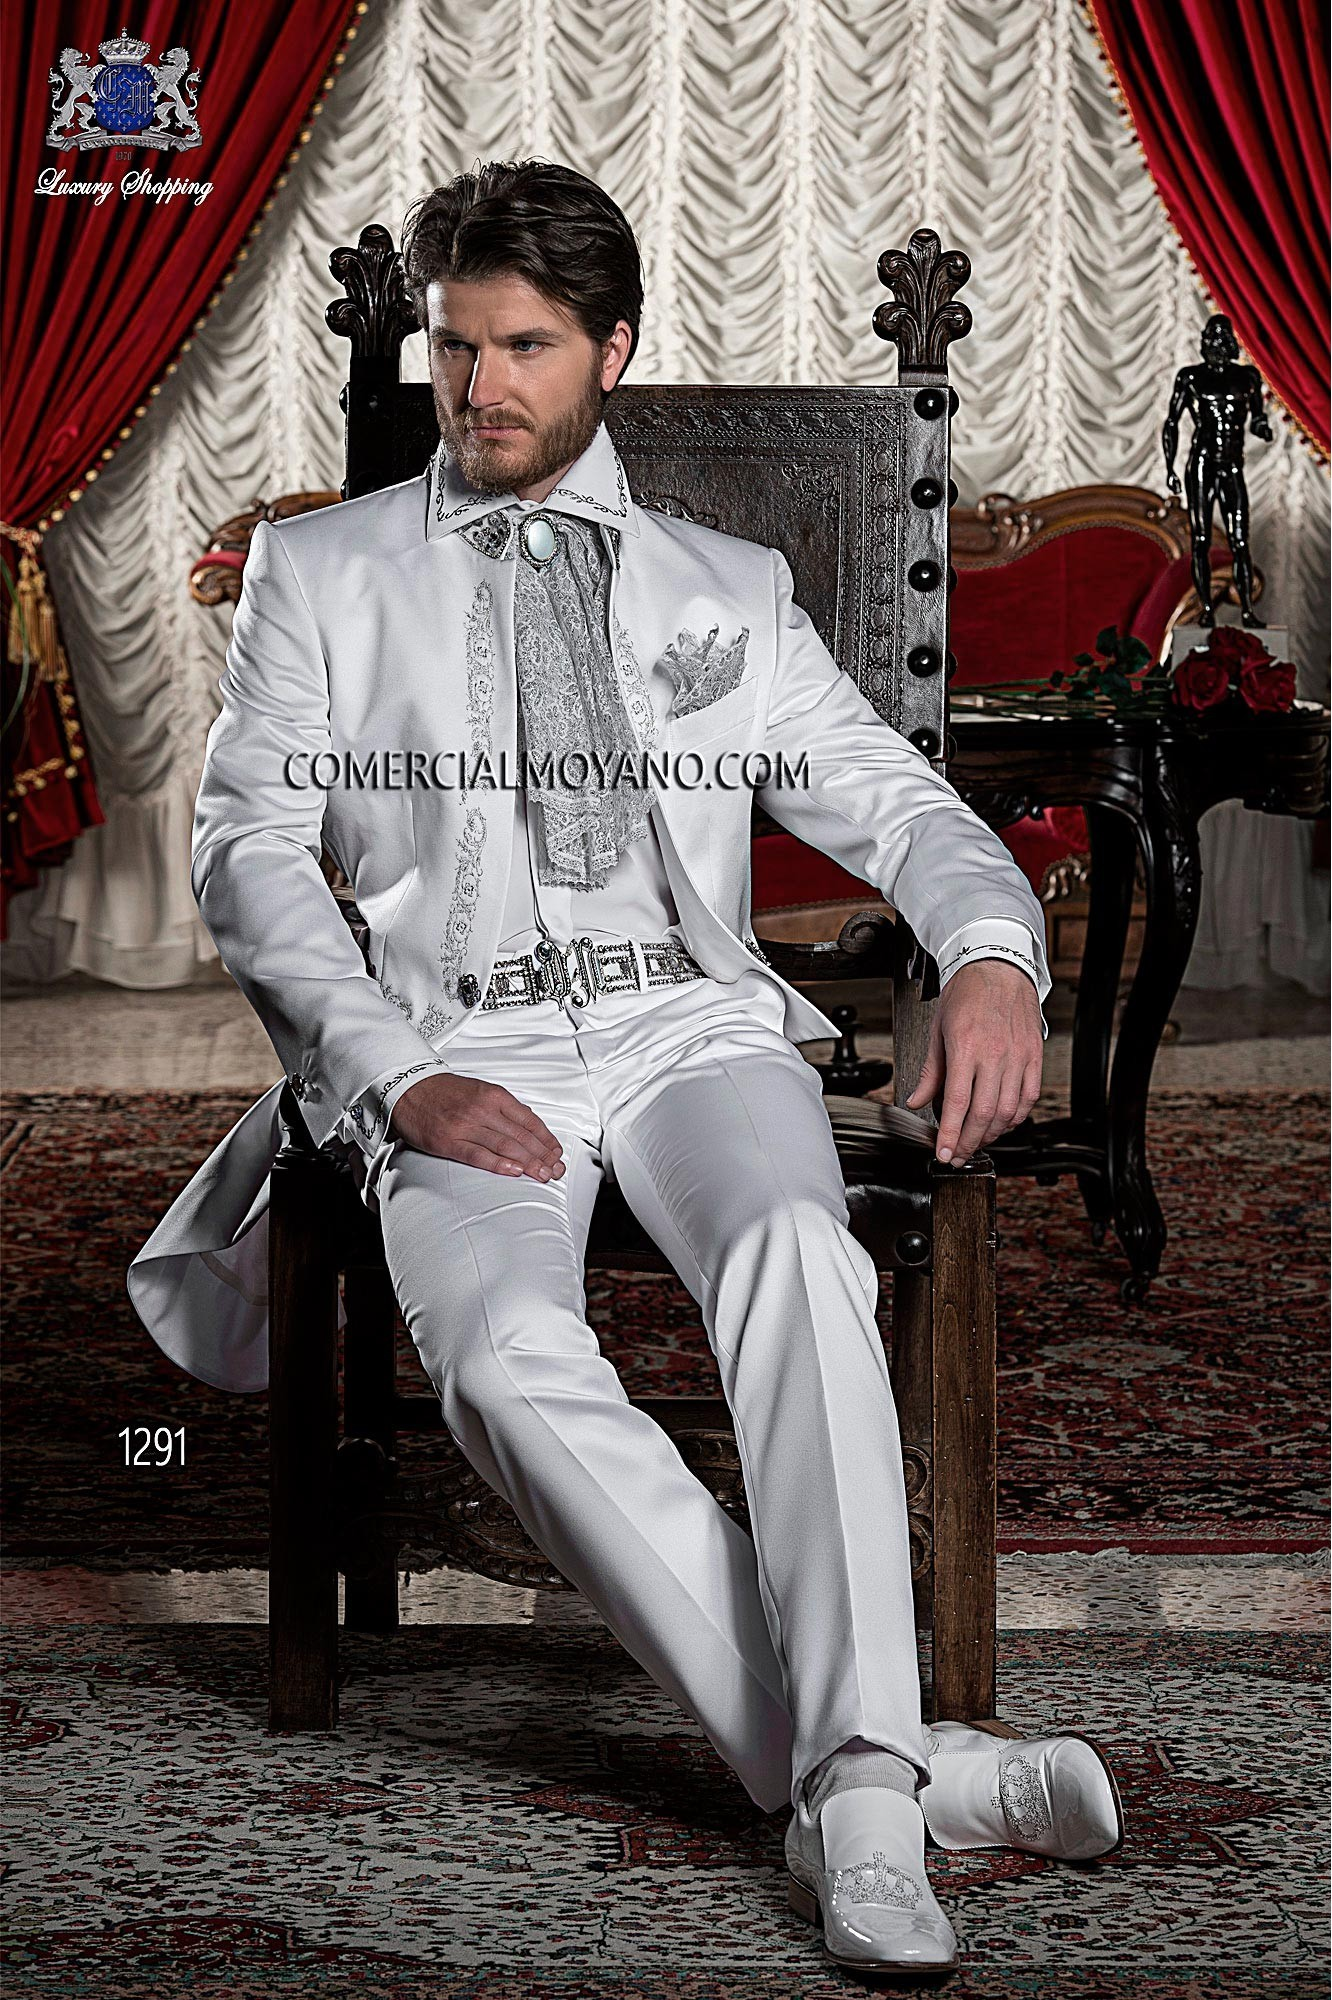 Italian bespoke white satin Tailcoat with silver drako embroidery and Mao collar with crystal rhinestones, style 1291 Ottavio Nuccio Gala, 2015 Baroque collection.